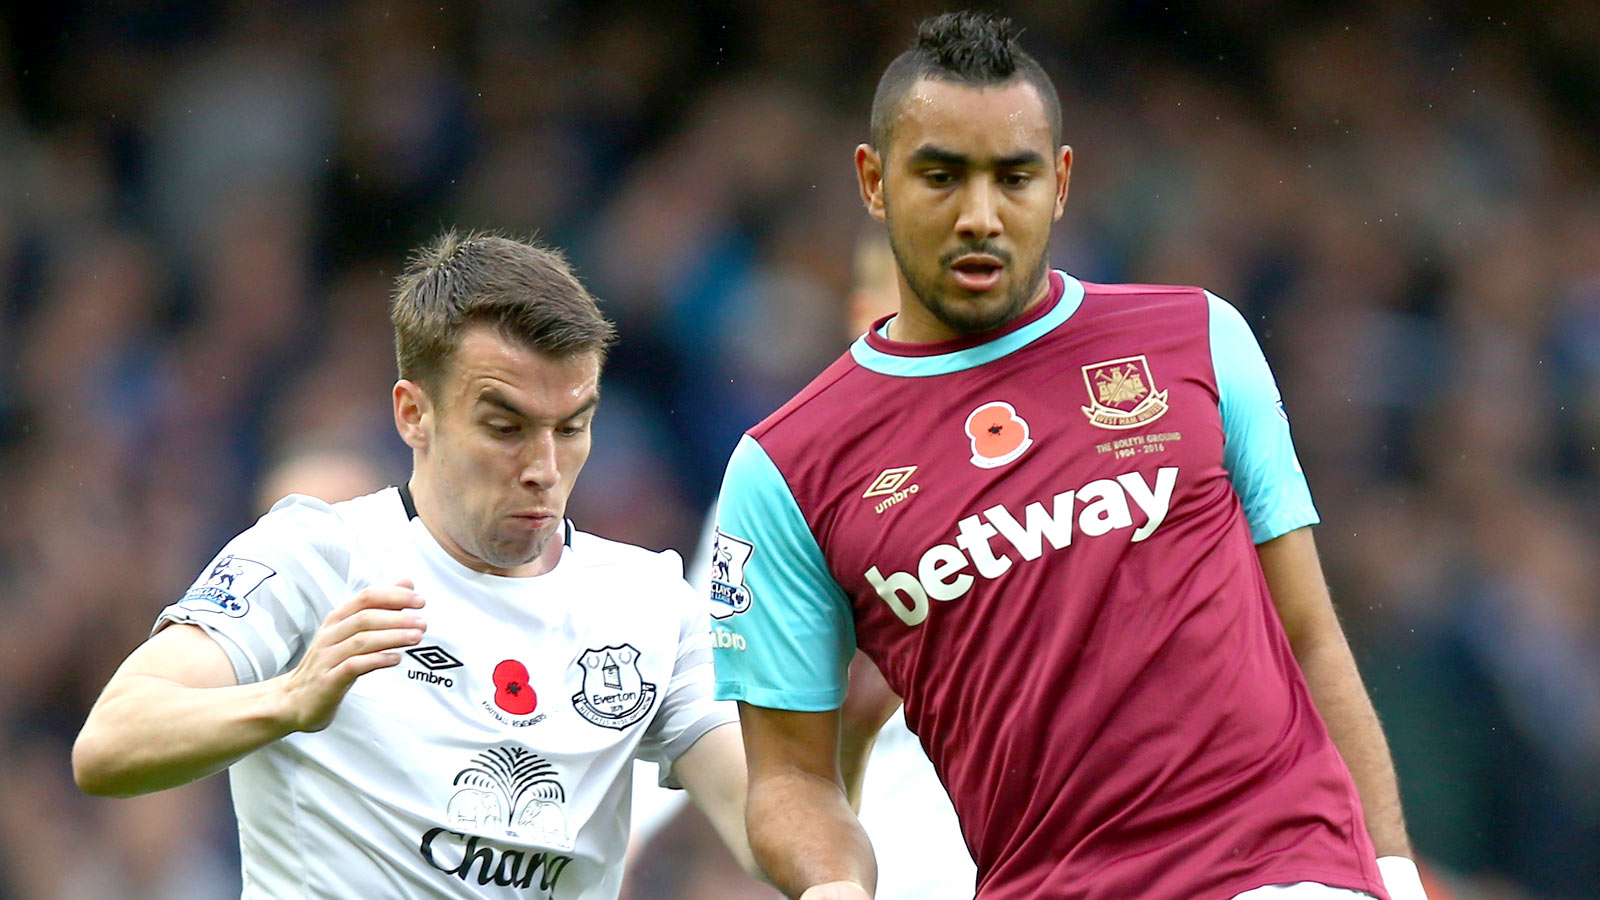 West Ham's Payet could be out 3 months with ankle injury